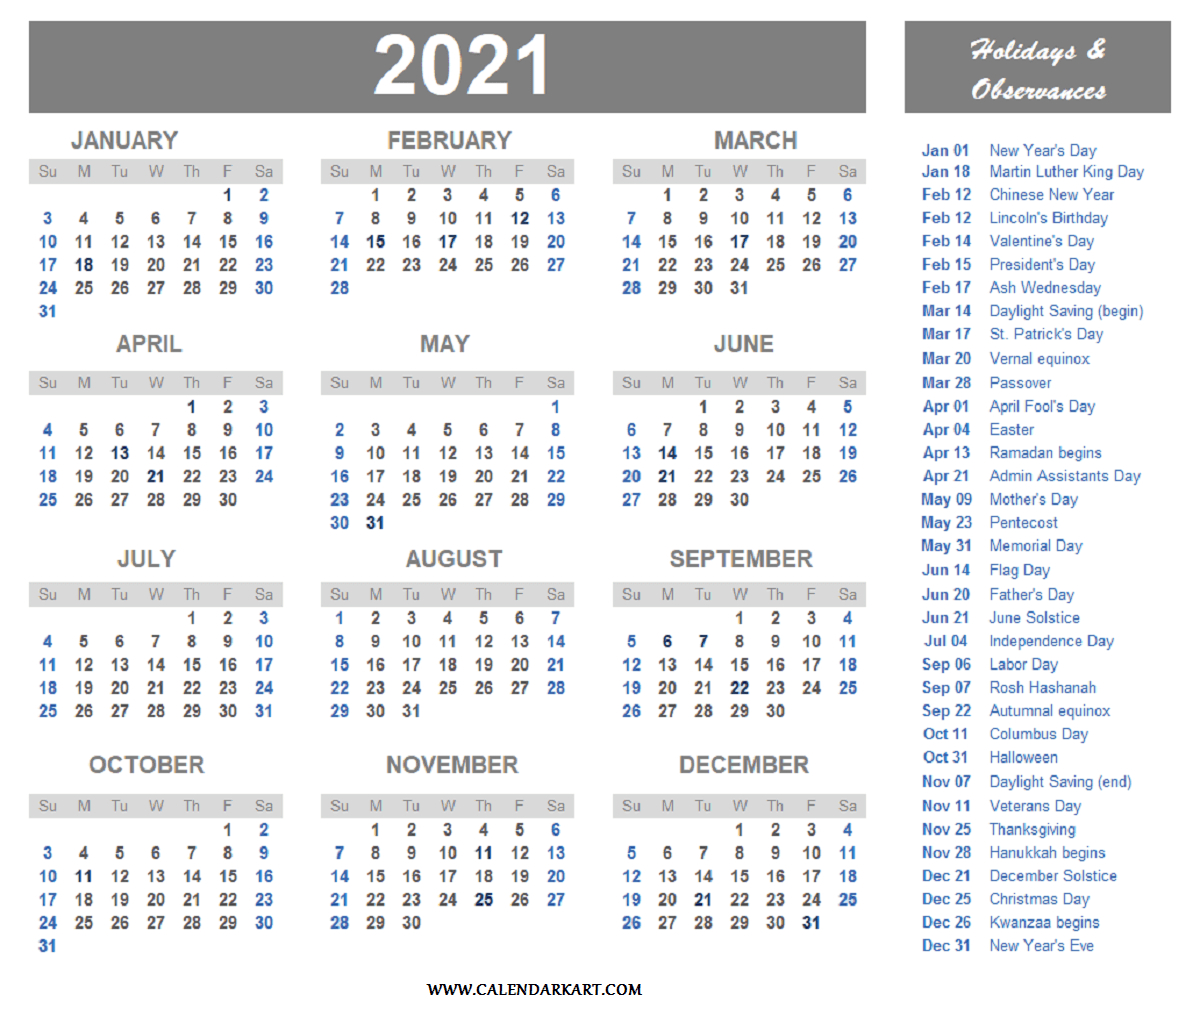 Calendar For 2021 With Holidays And Ramadan / United-Excel List Of Holidays 2021